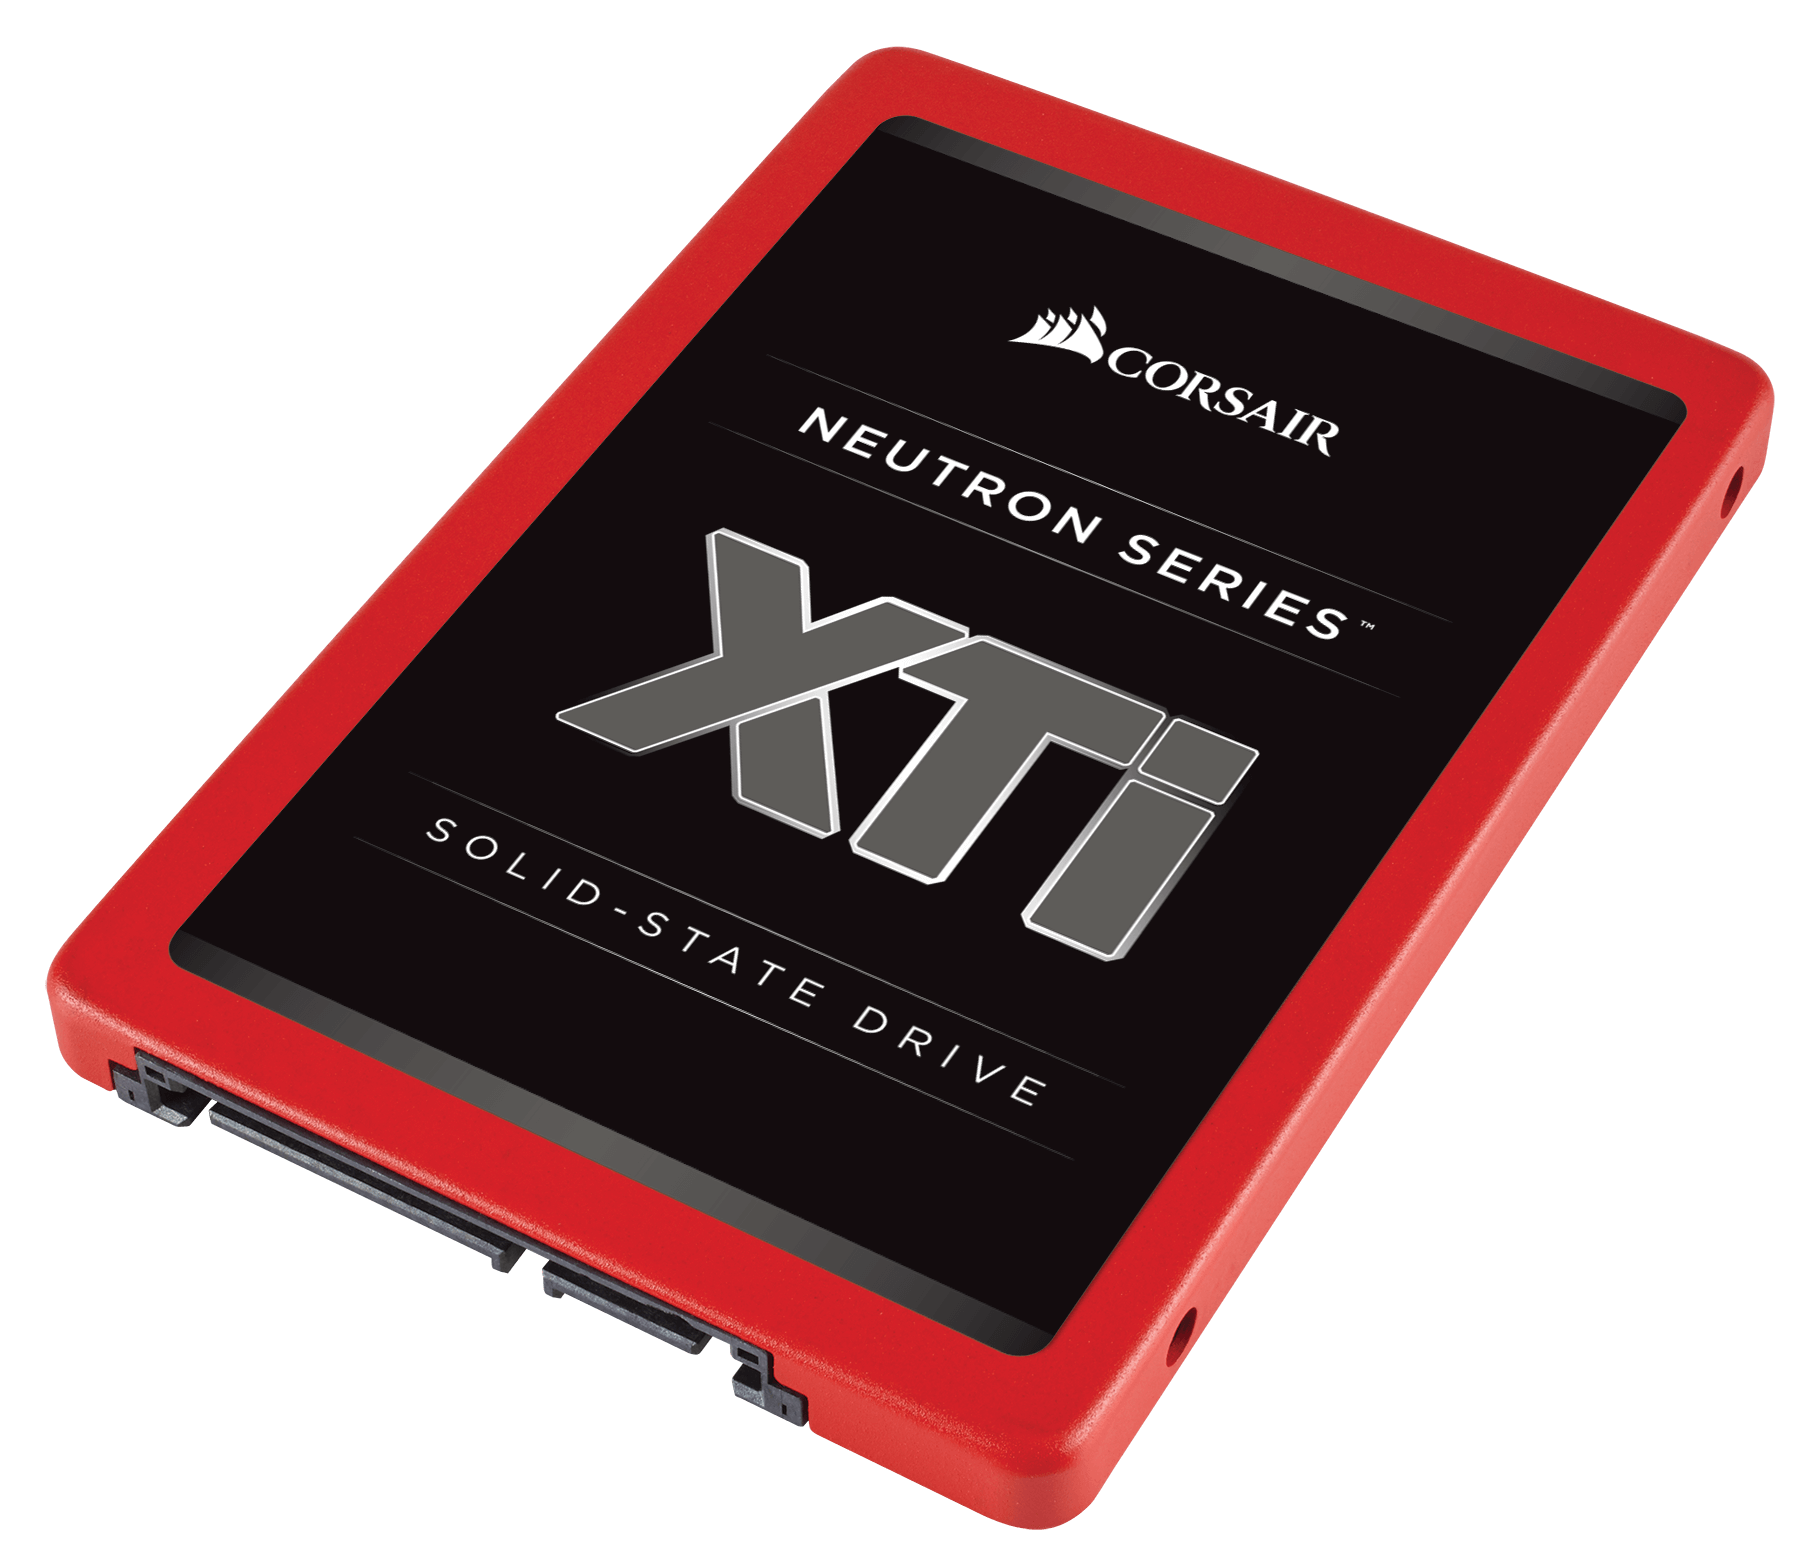 Corsair Neutron Series XTi 960GB SATA 3 6Gb / S SSD